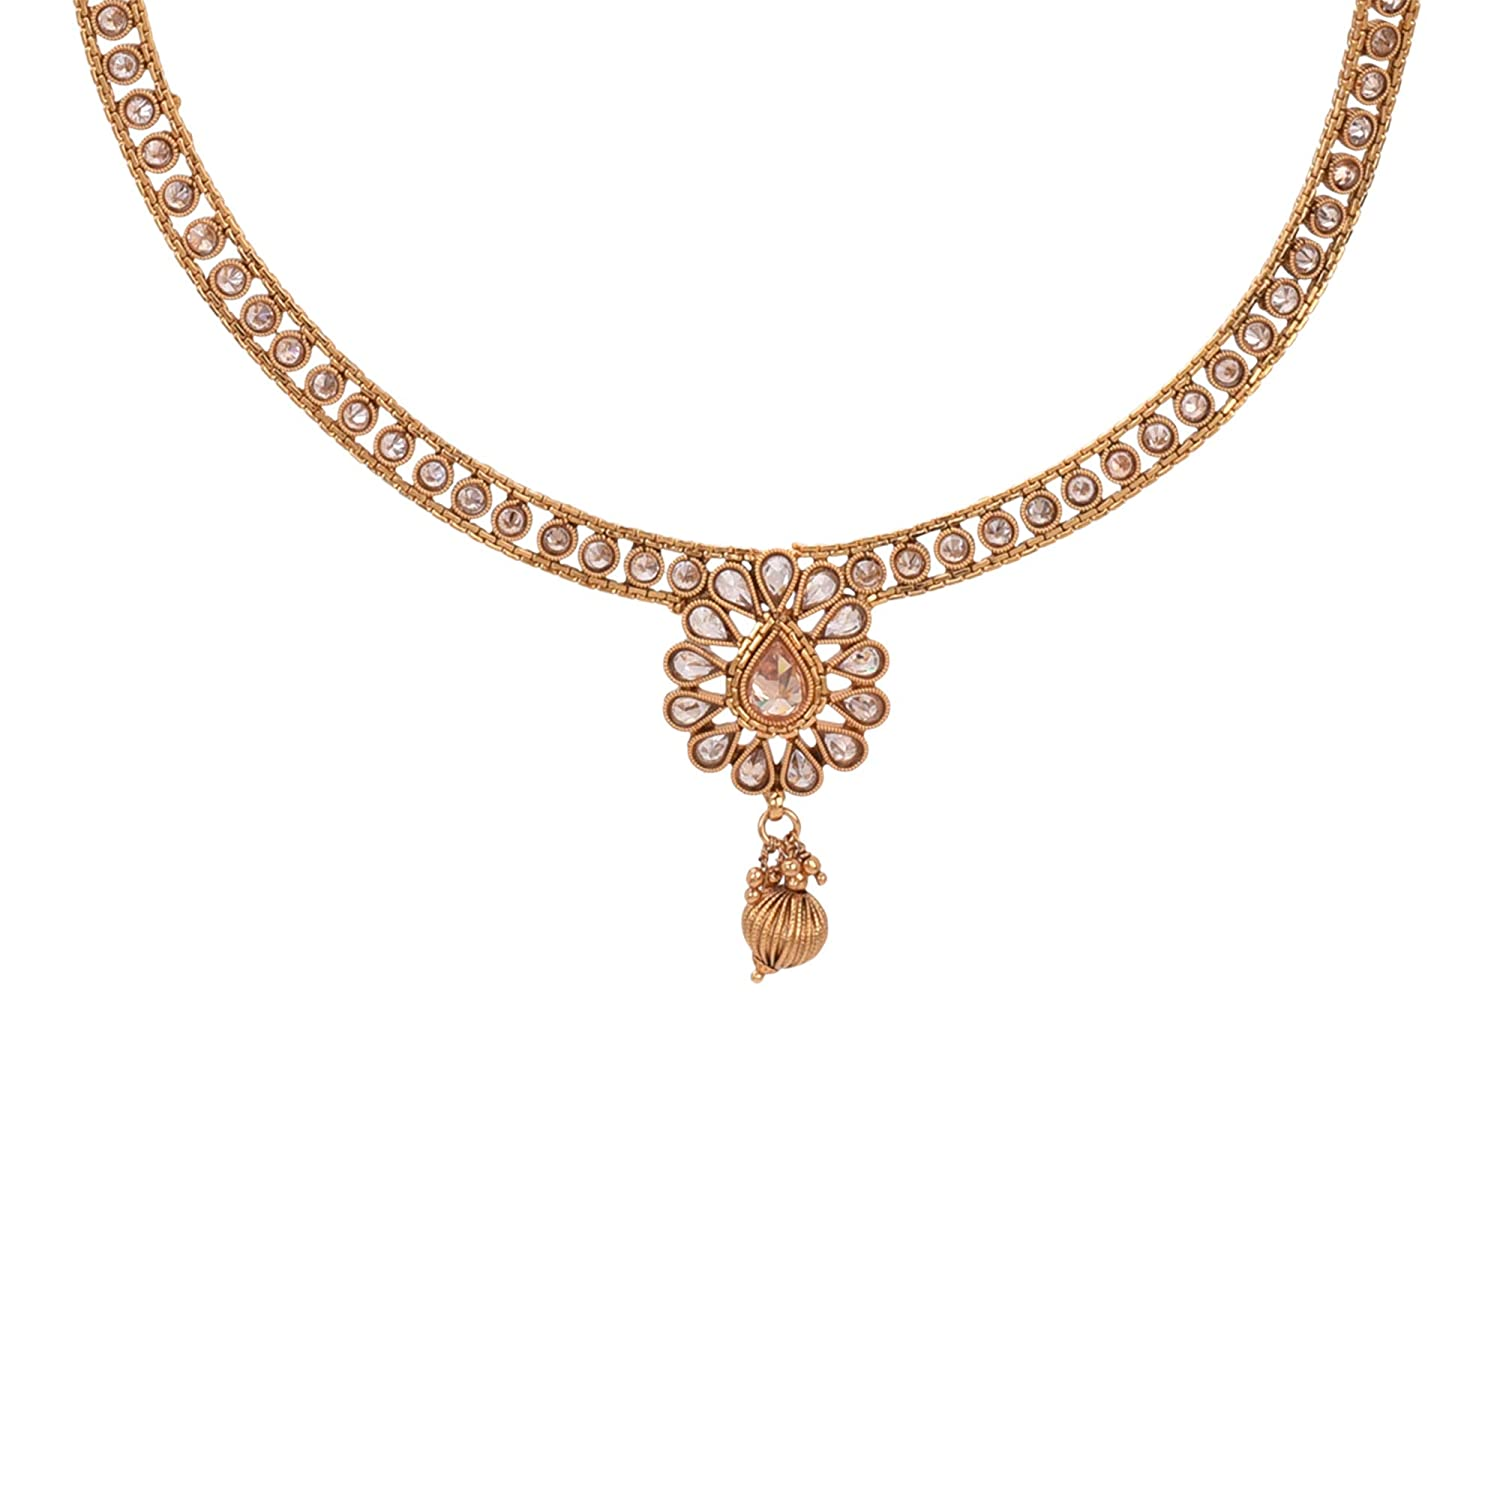 2019 year for women- Jewellery everstylish reviews